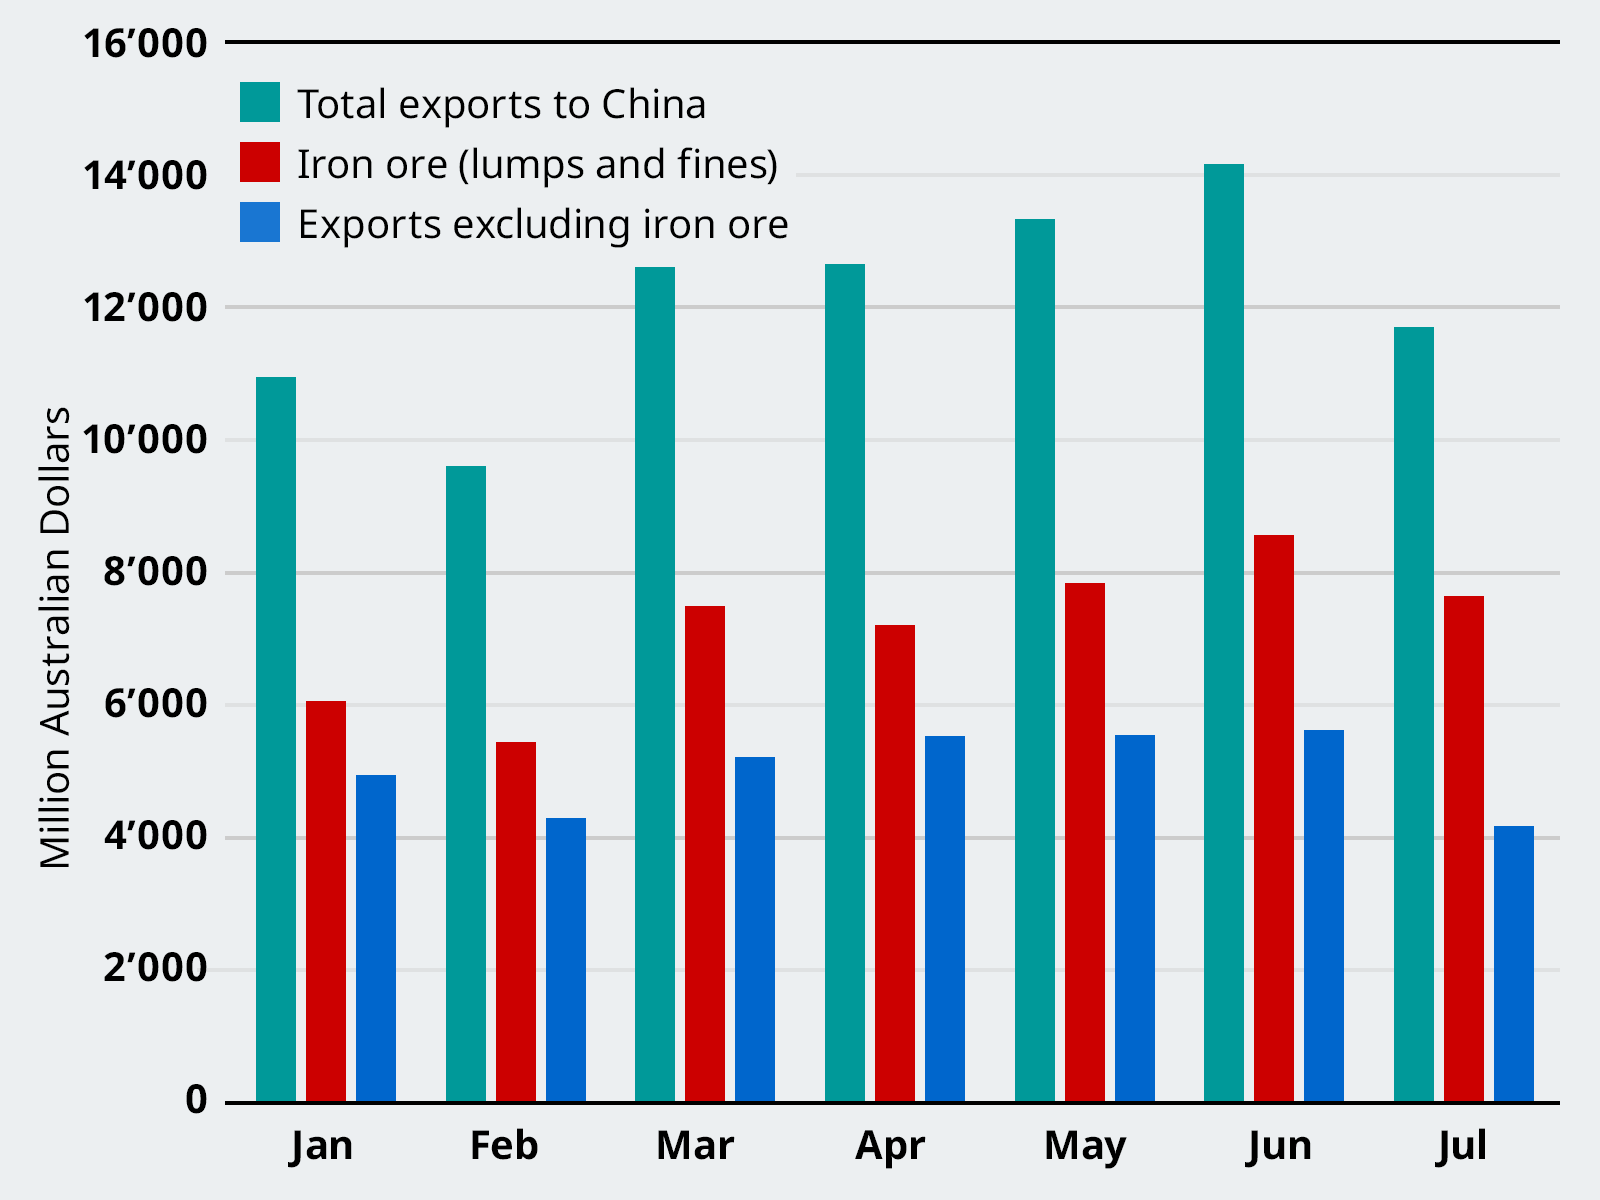 Exports of Goods to China, January to July 2020